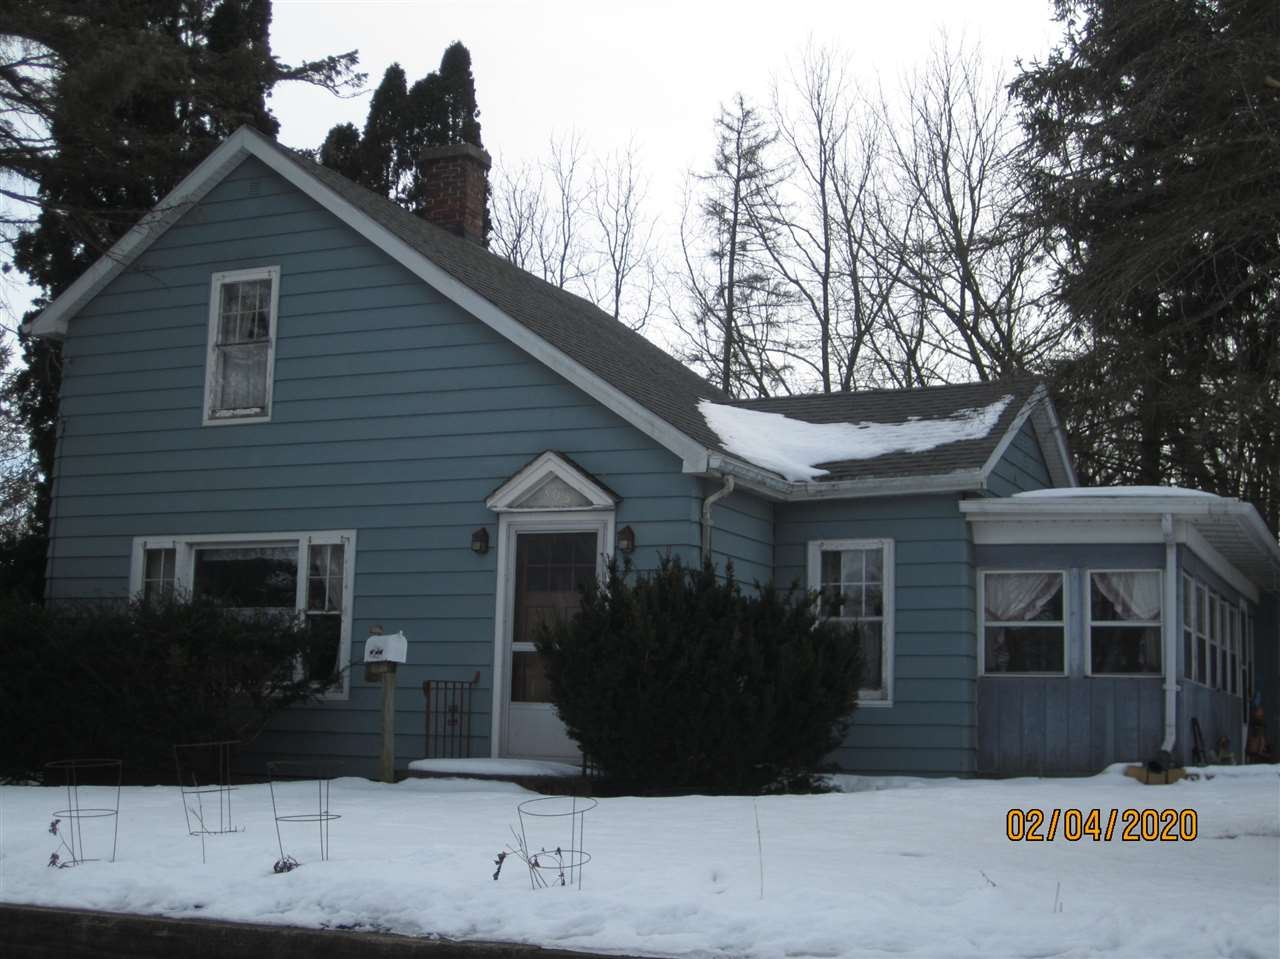 303 E HIGH ST, Edgerton, WI 53534 - #: 1876249